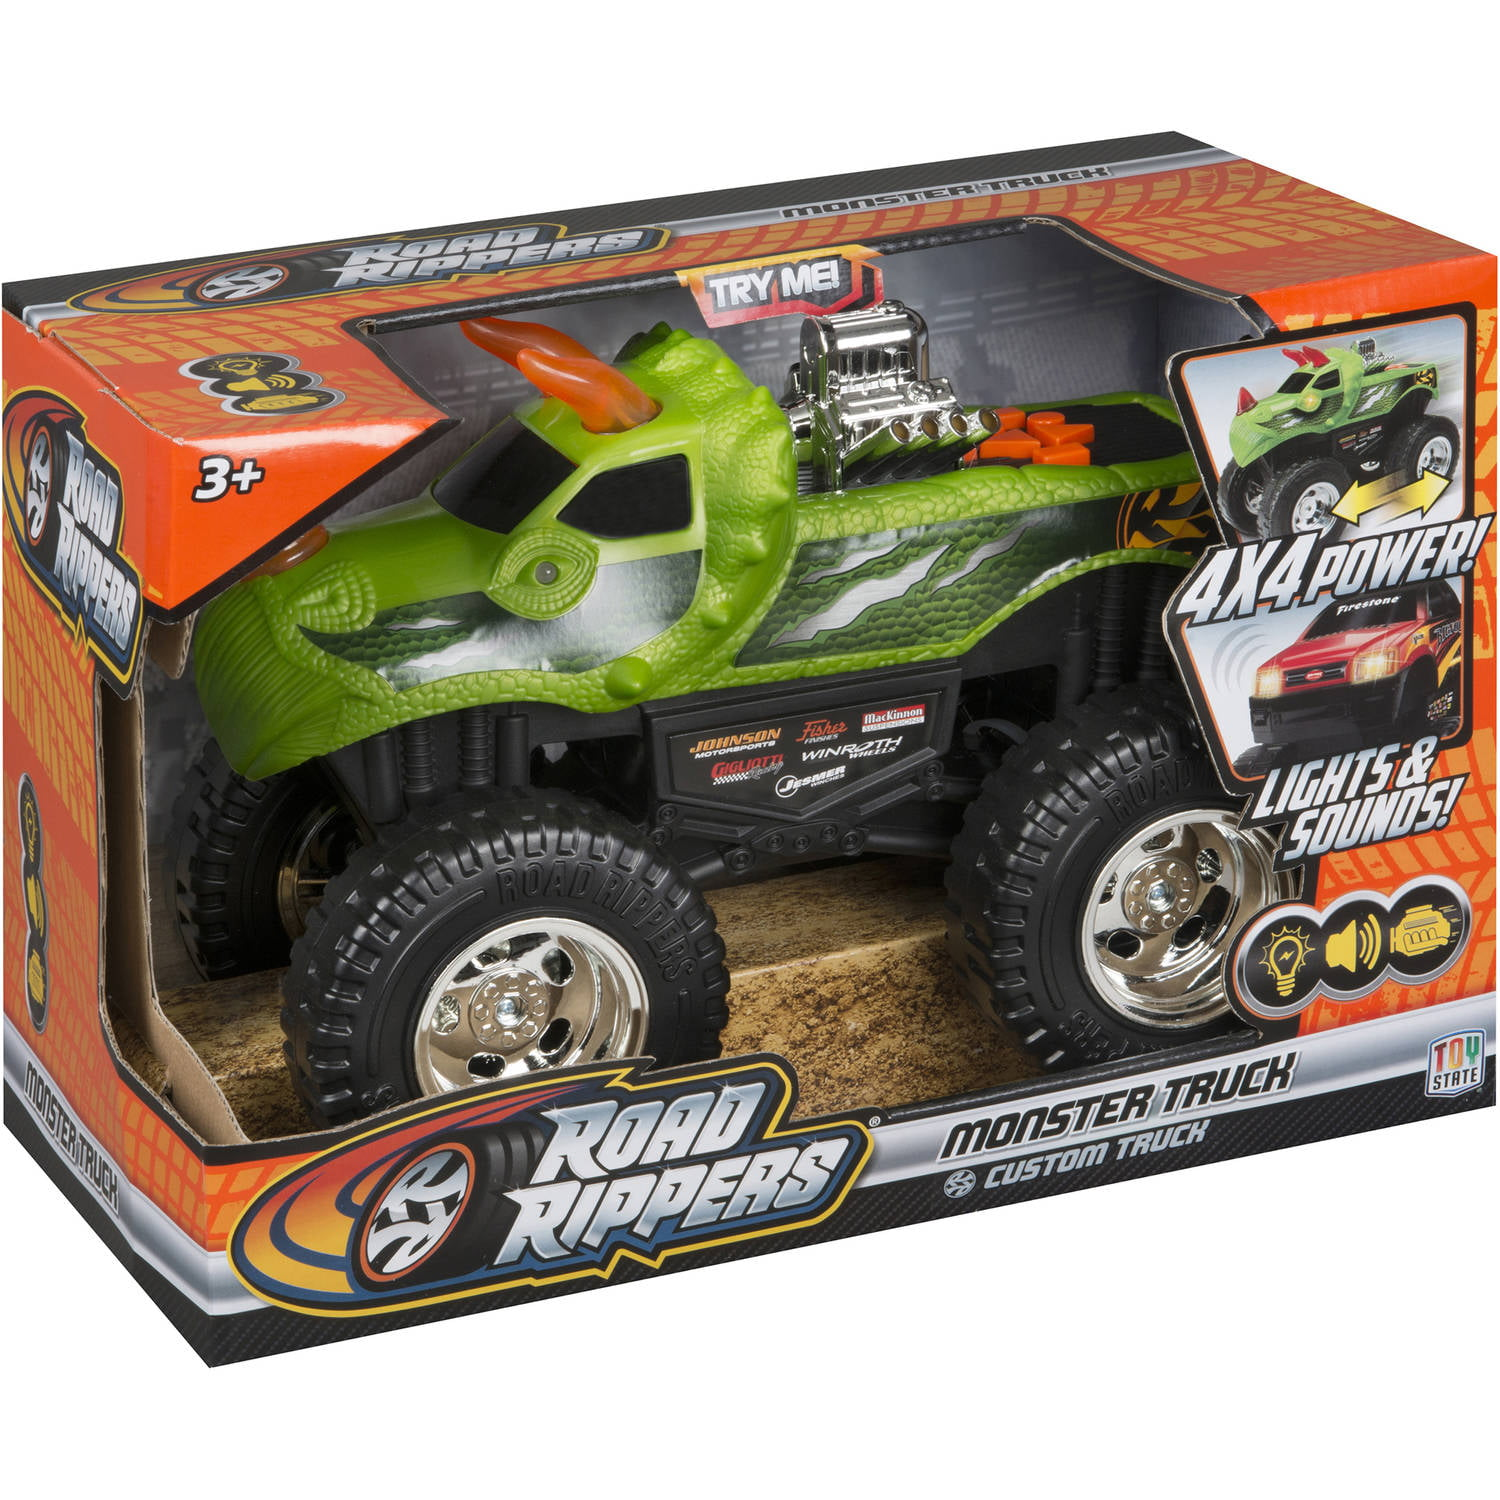 "Road Rippers 10"" Light and Sound 4x4 Monster Truck, DinoRoar by Road Rippers"